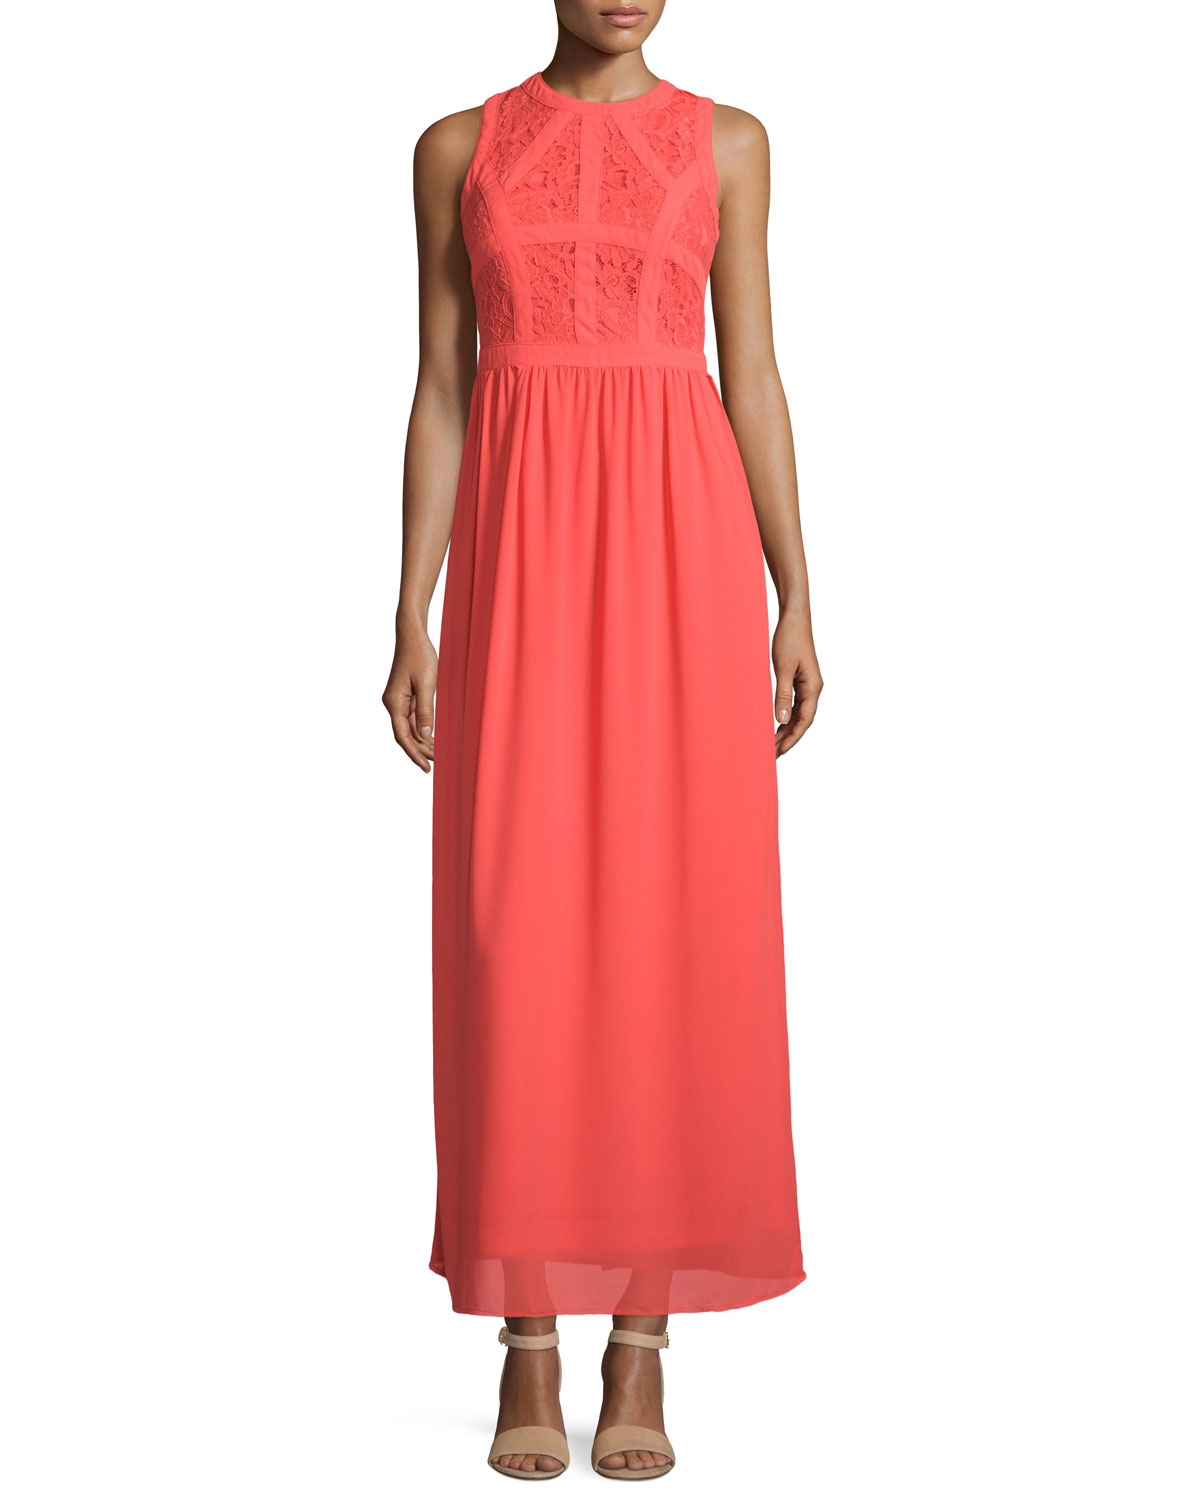 Neiman marcus Sleeveless Lace & Chiffon Maxi Dress in Red ...